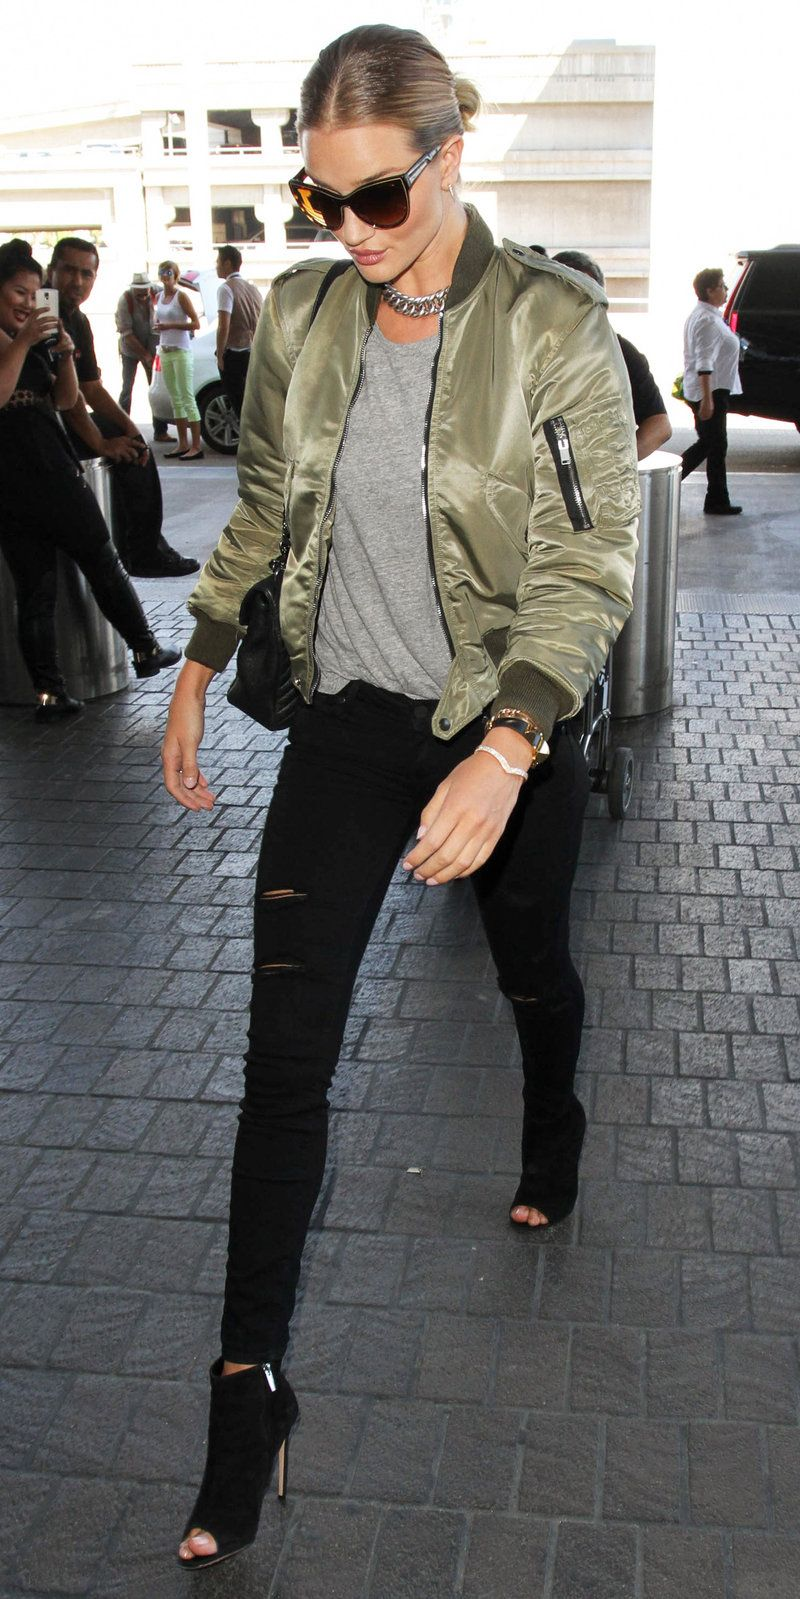 For some major fashion inspo, take a look at how 10 celebrities have styled their nylon army green bomber jackets.